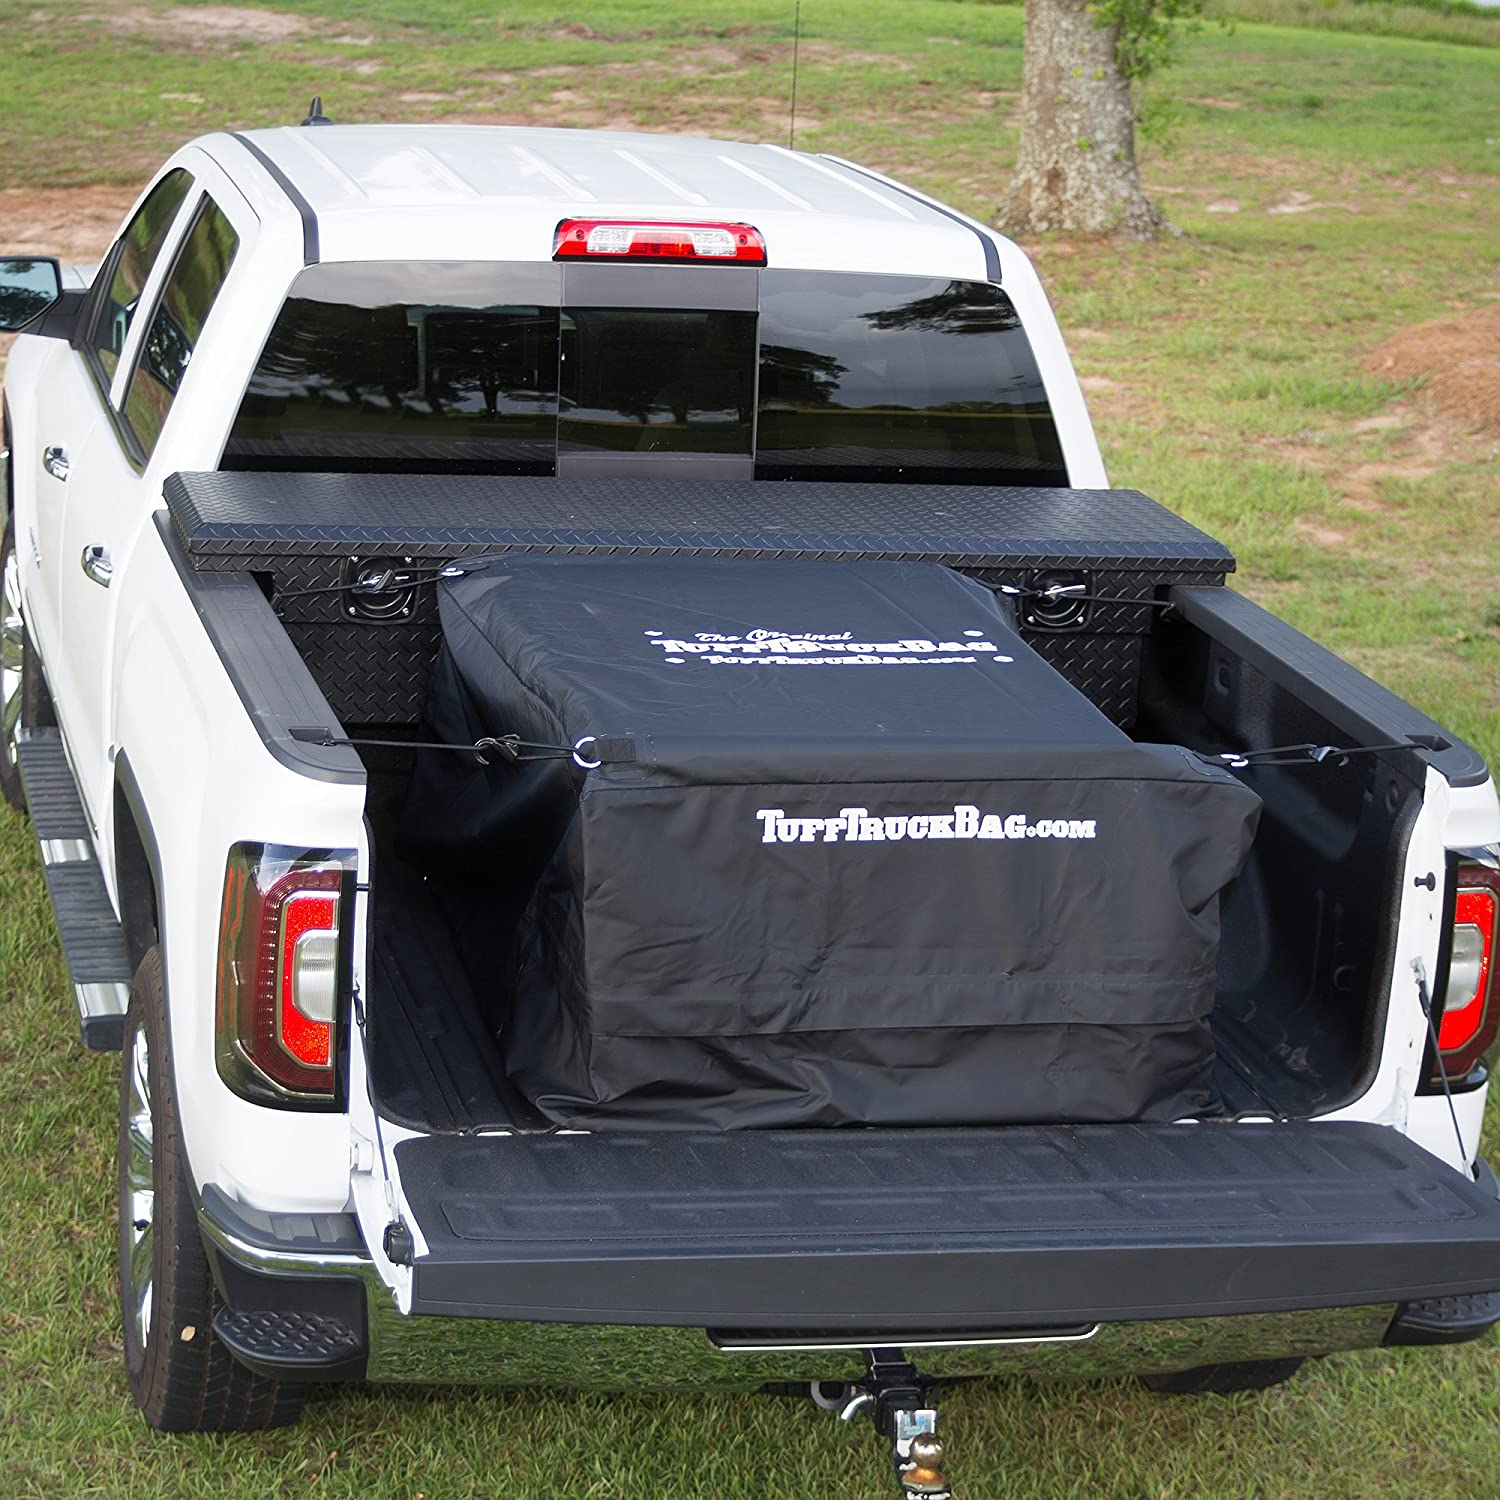 tray truck beds slide drawer storage bed u industries out rolling nuthouse pullout pickup cargo drawers sliding